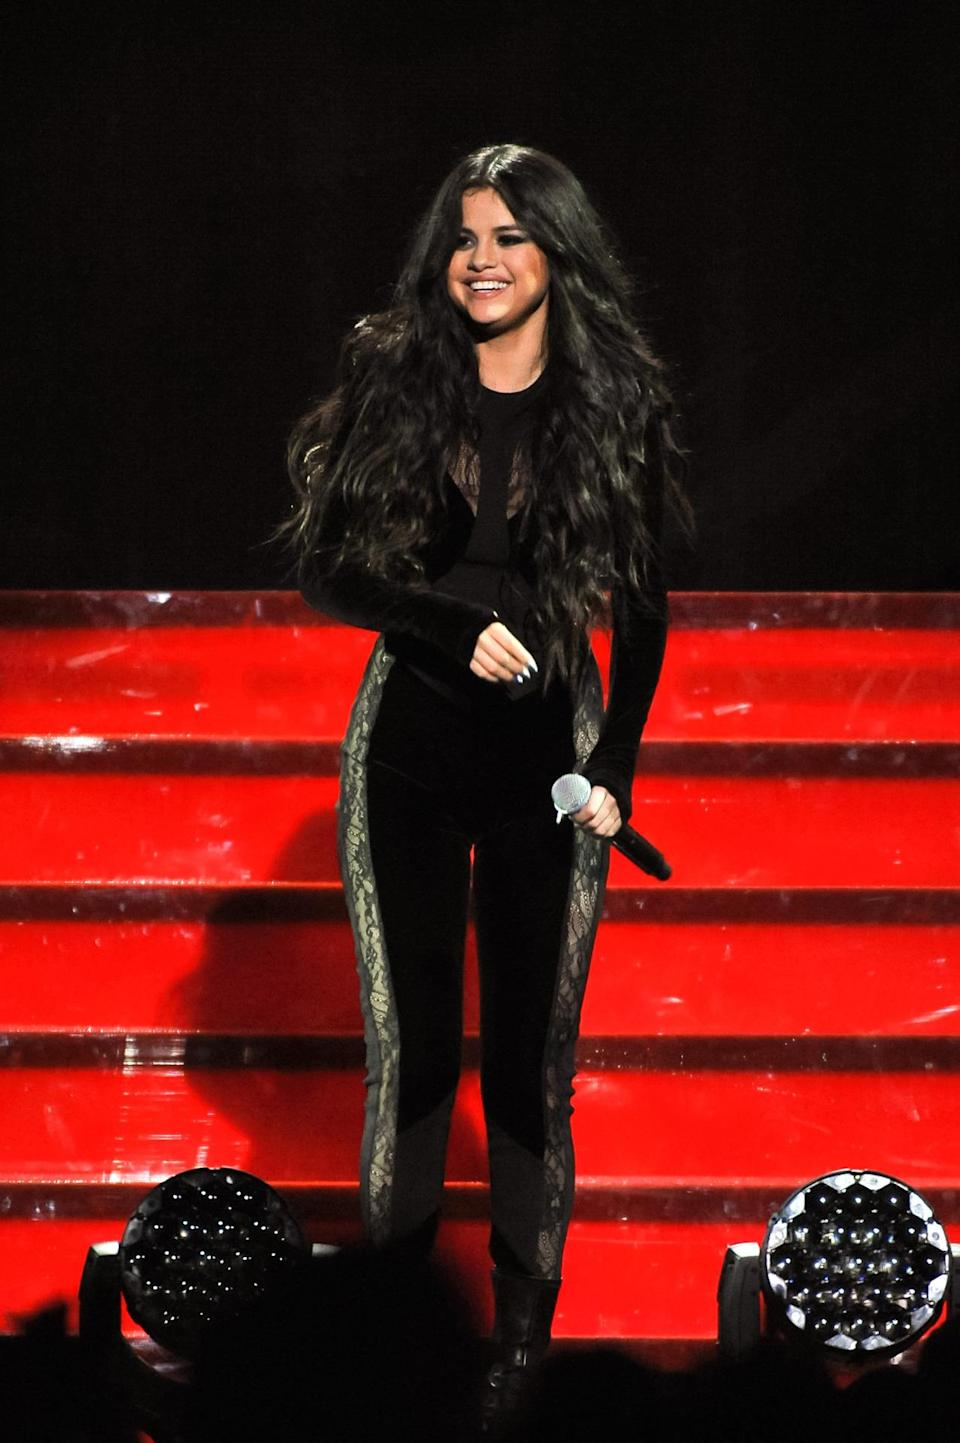 <p>Gomez went a bit more sultry for her performance outfit, in a black jumpsuit with lace detailing.</p>